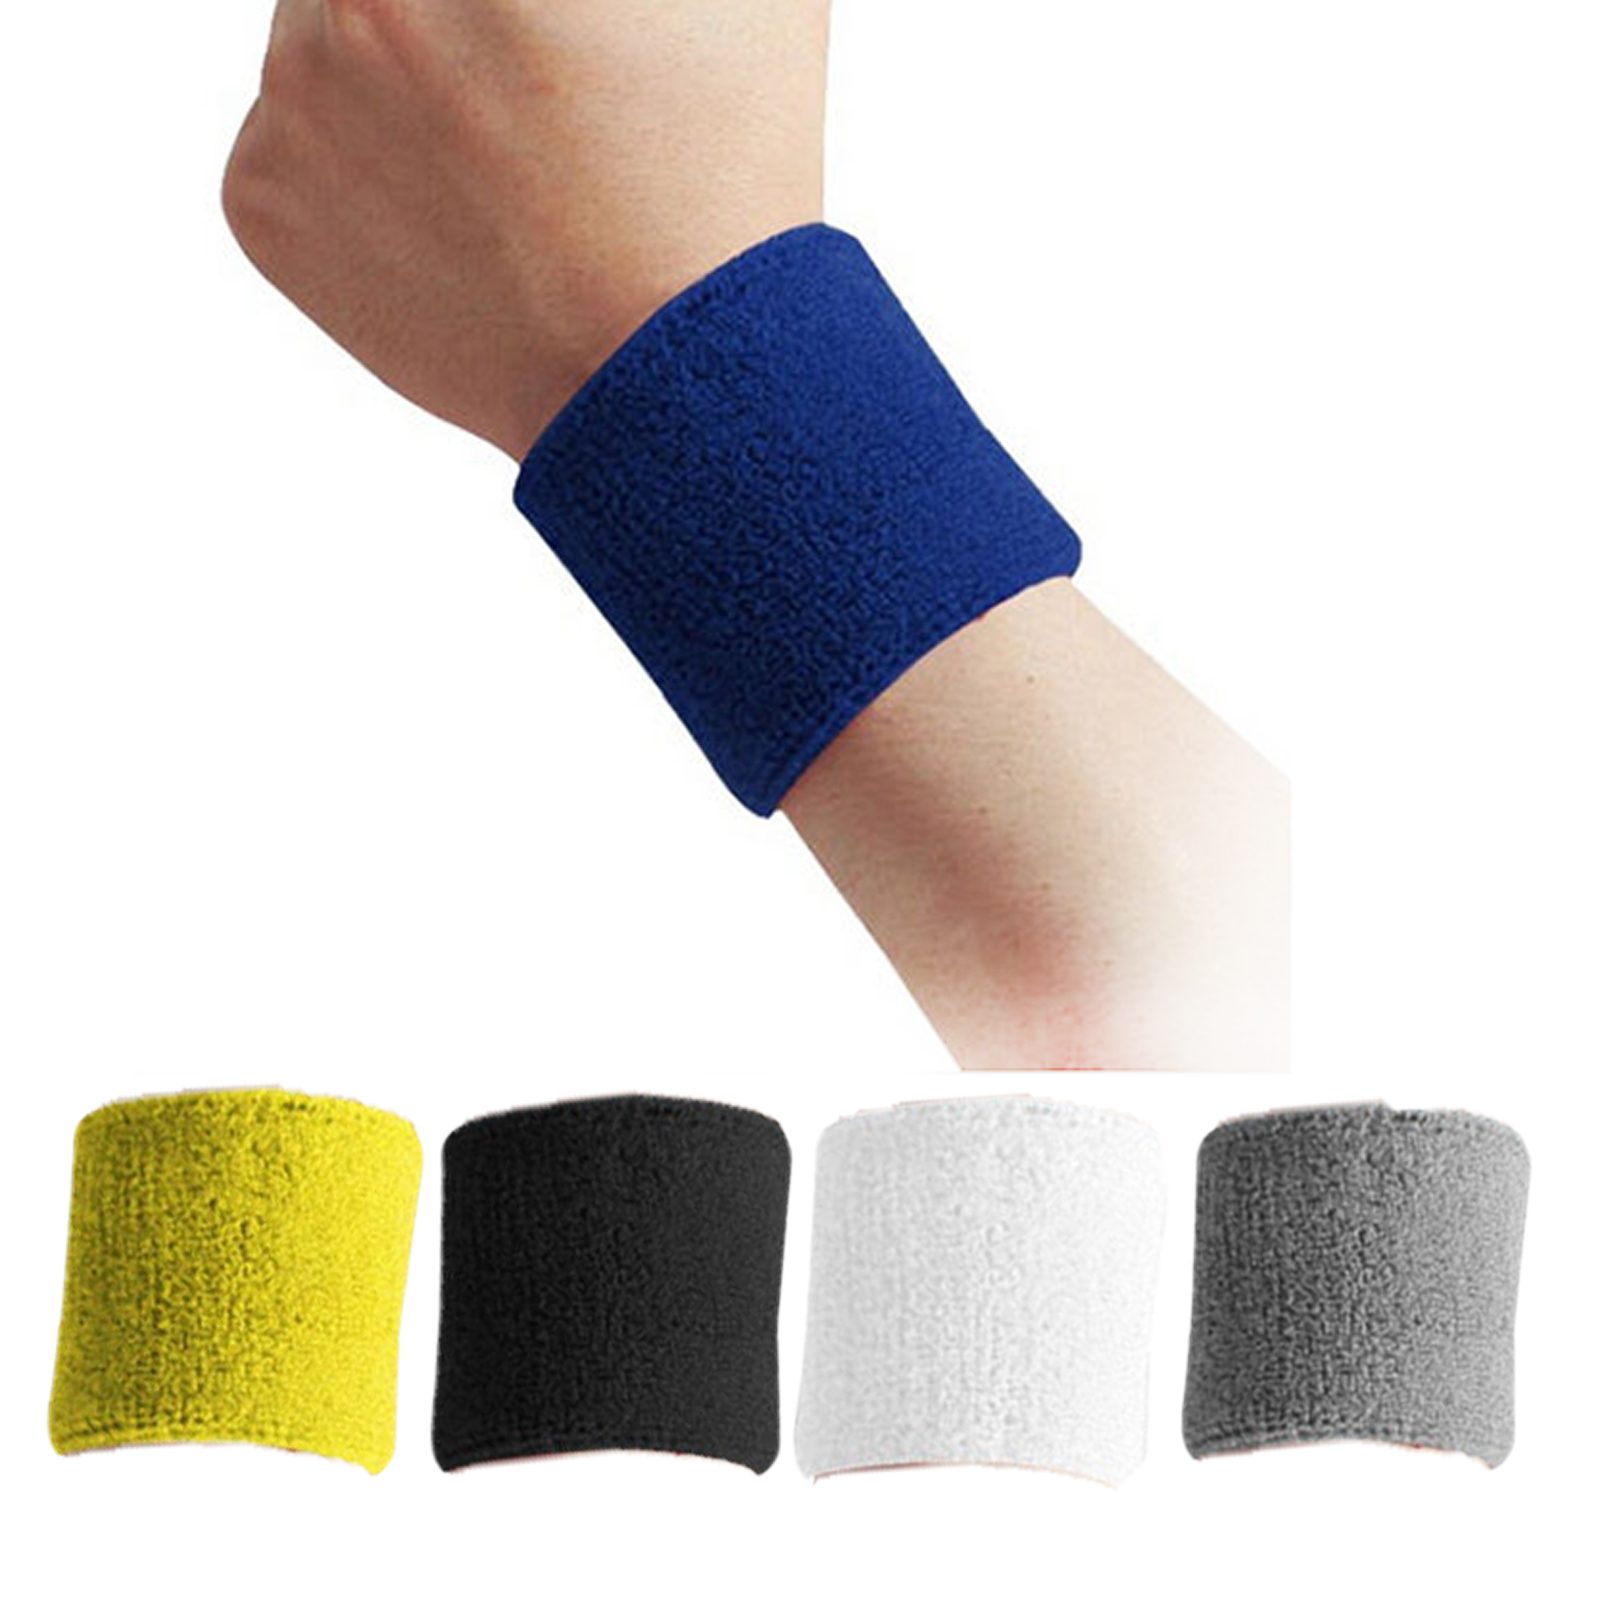 Wristband Sweat, Running, Fitness, Tennis Badminton Basketball, Strap Wrist 13